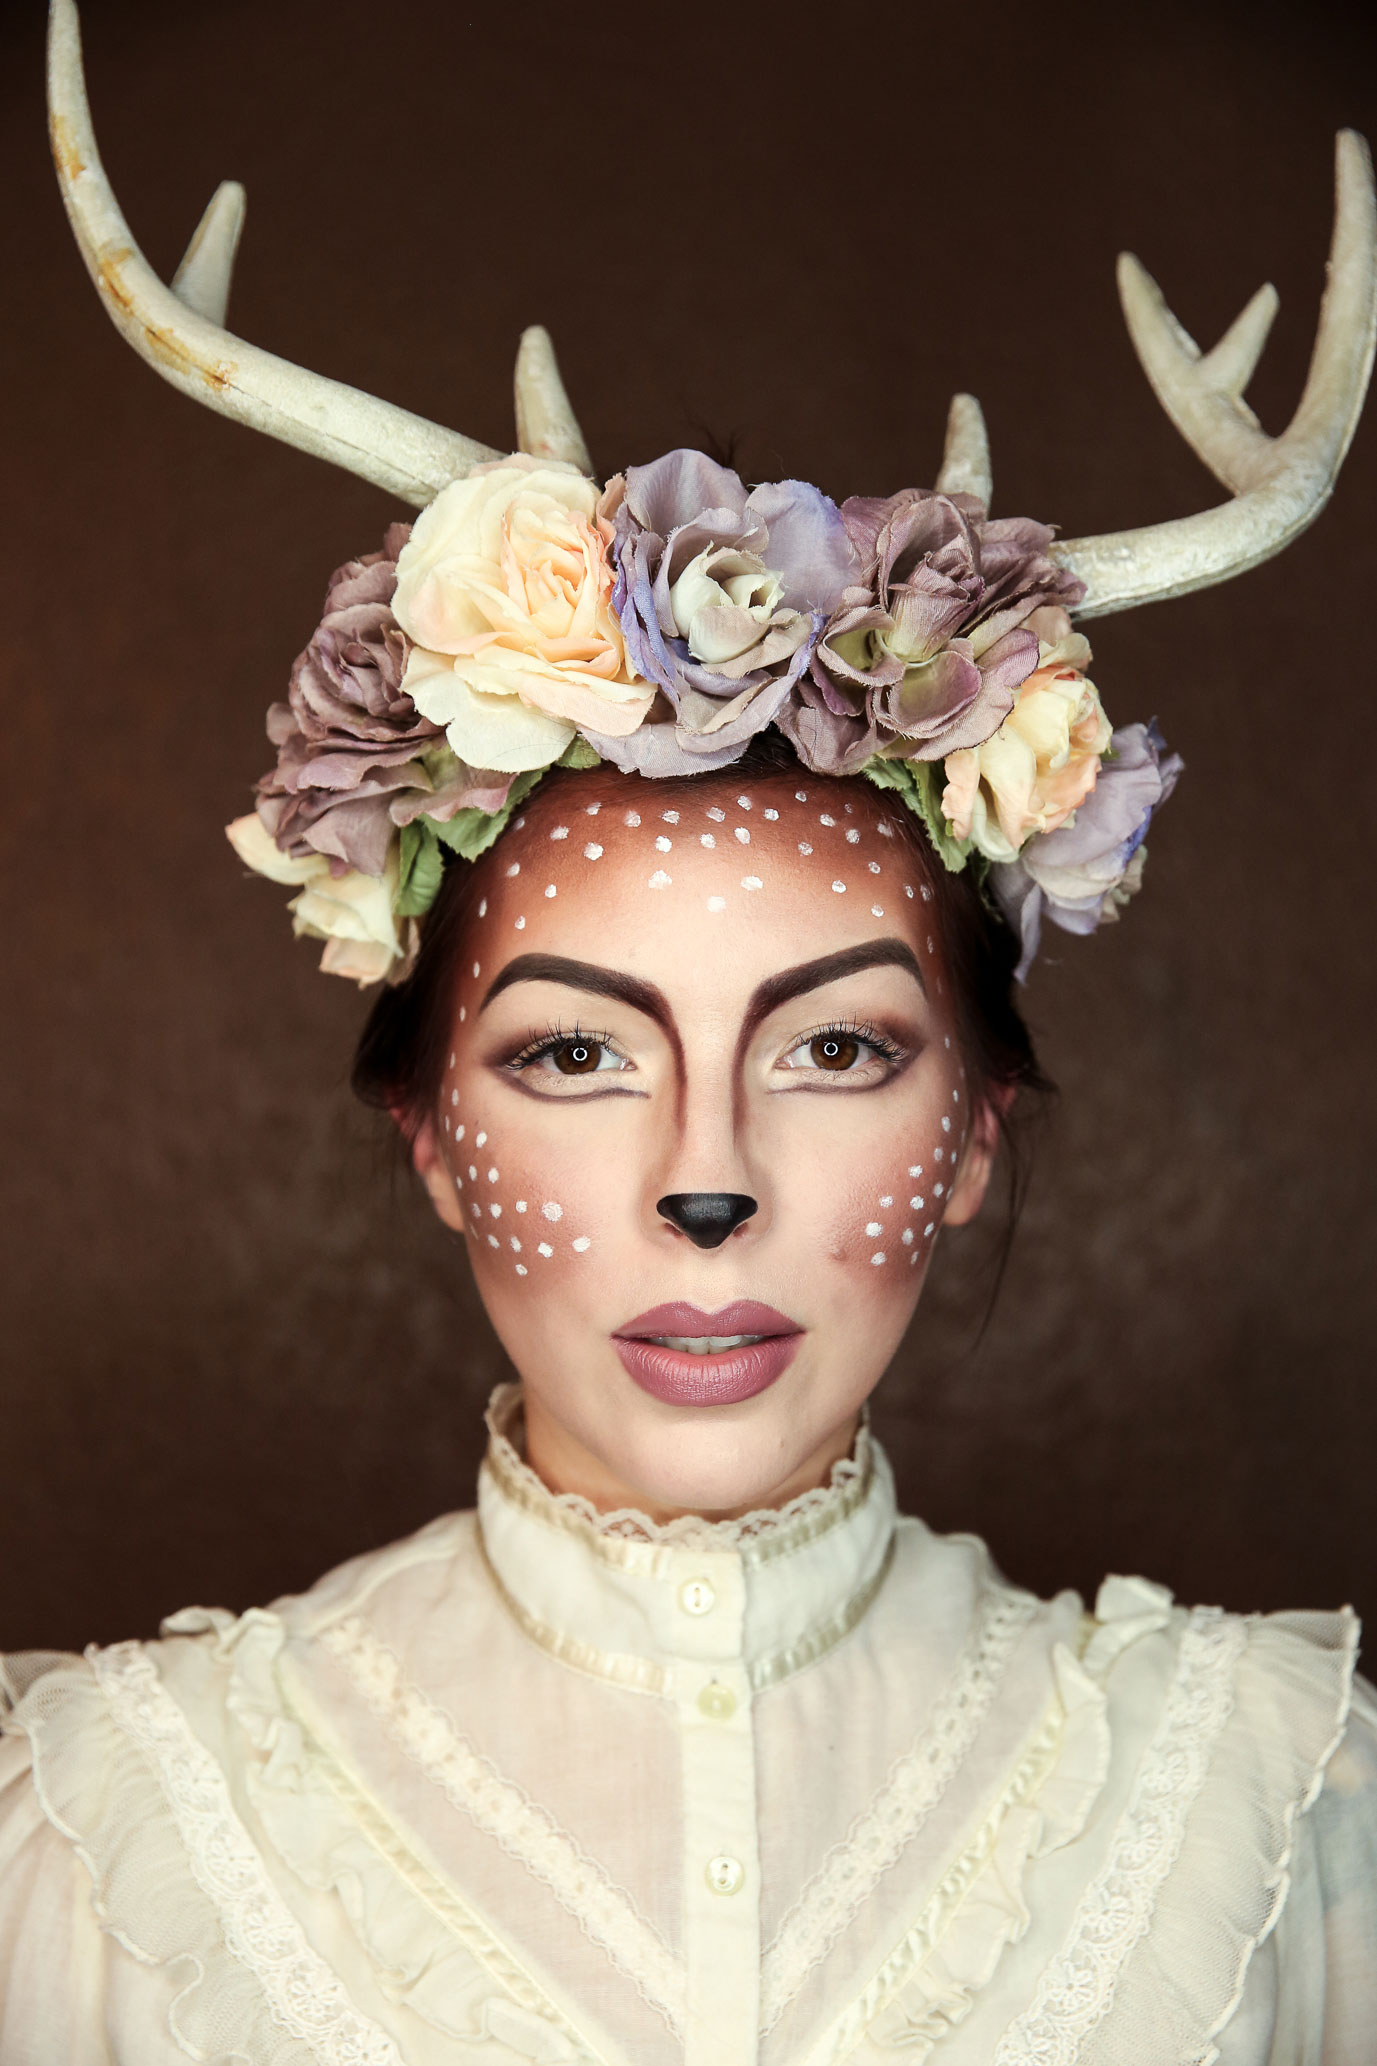 Halloween Costume Makeup: Easy Deer Makeup Tutorial